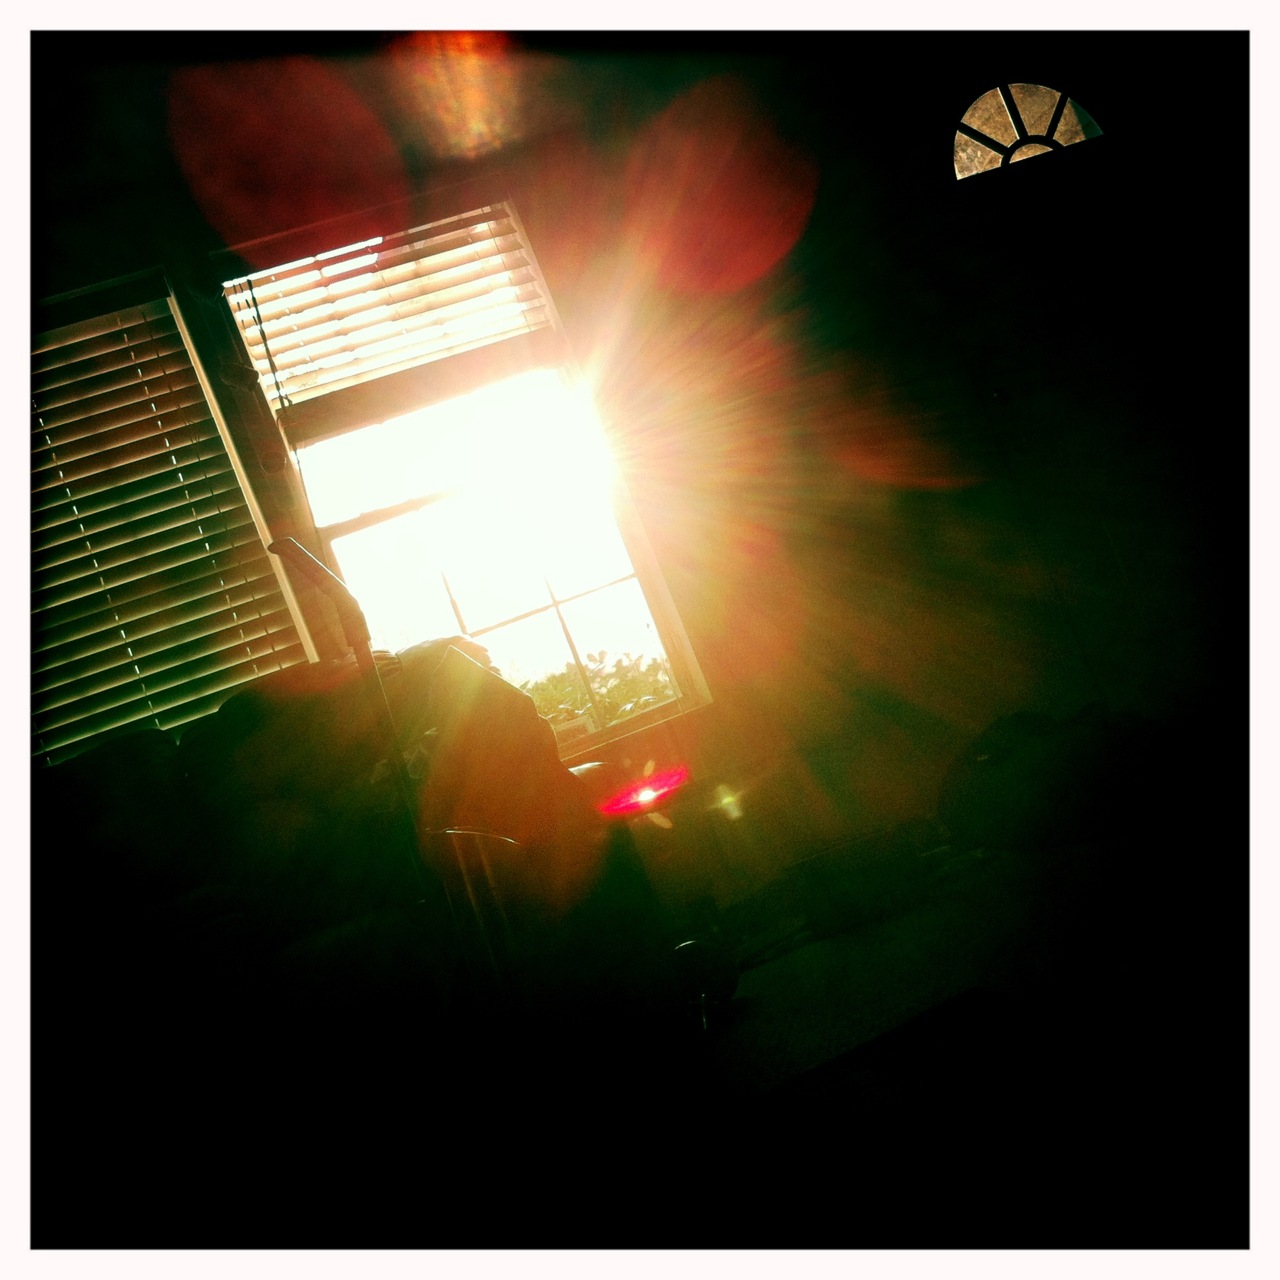 Sun coming through the window 8 John S Lens, Blanko Film, No Flash,